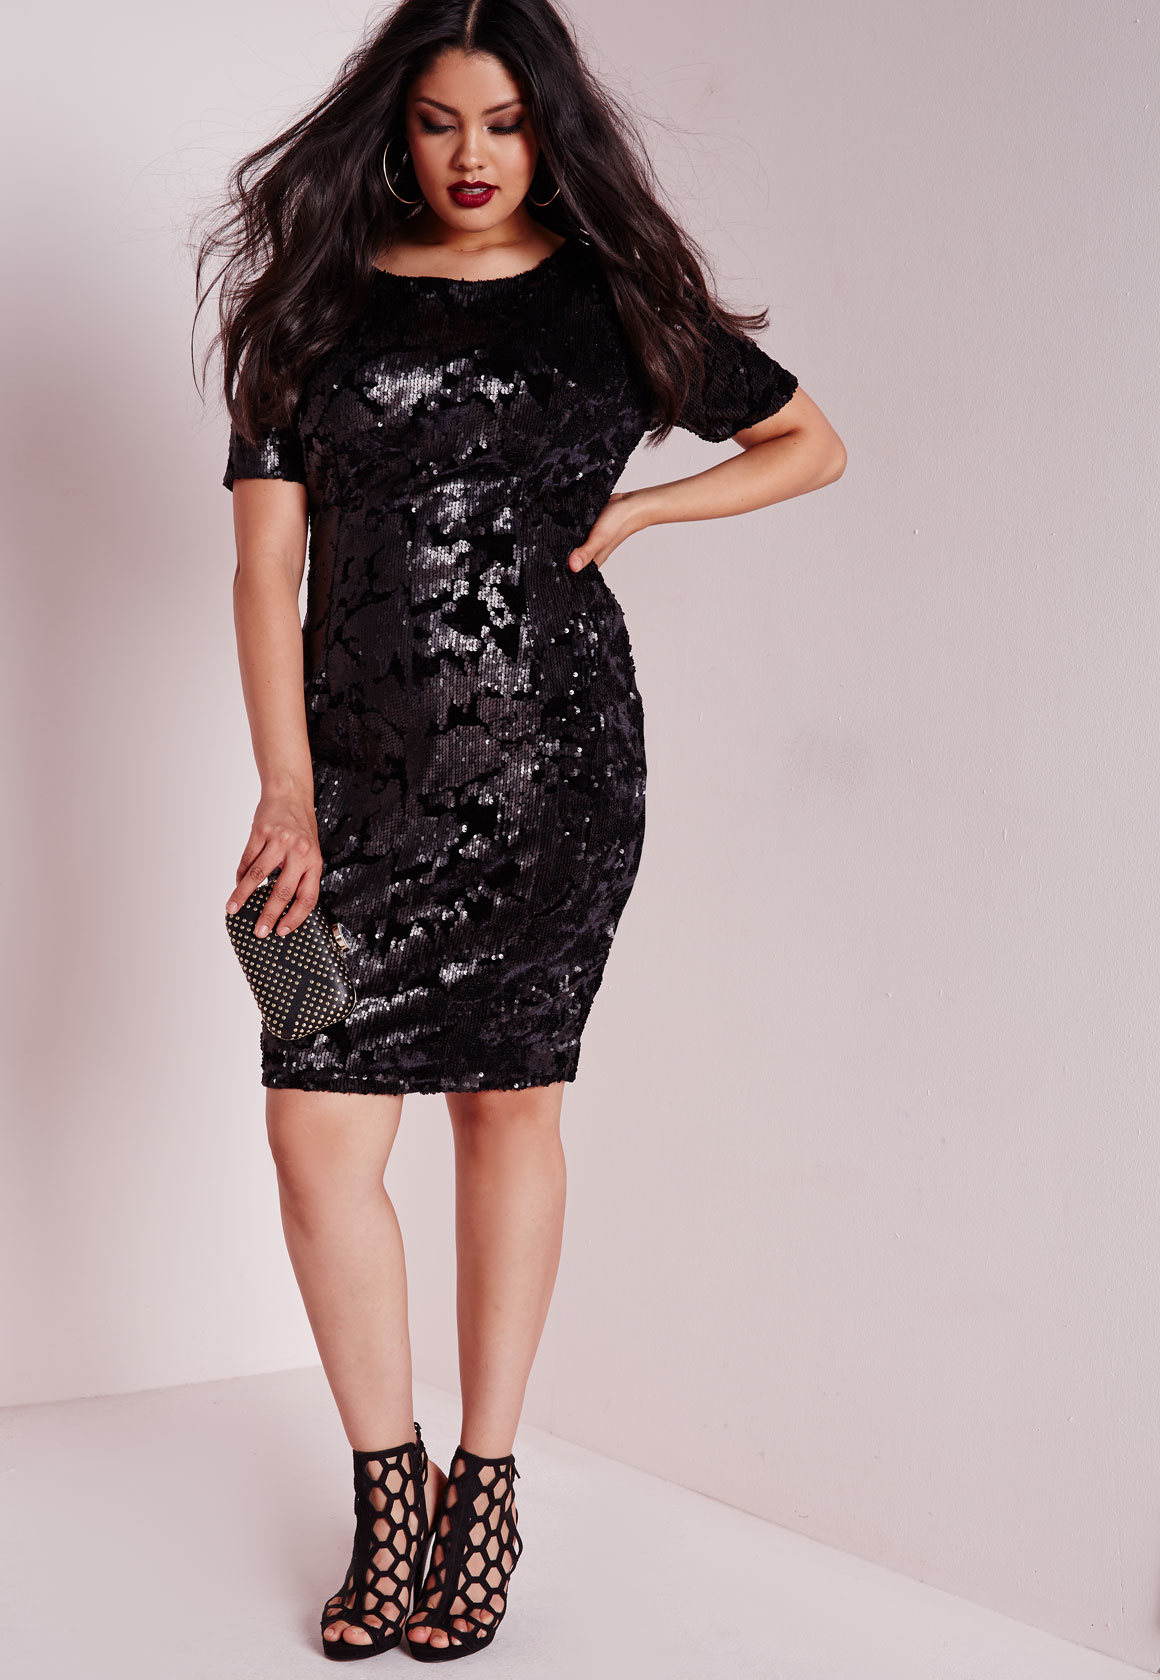 Lyst - Missguided Plus Size Sequin Dress Black In Black